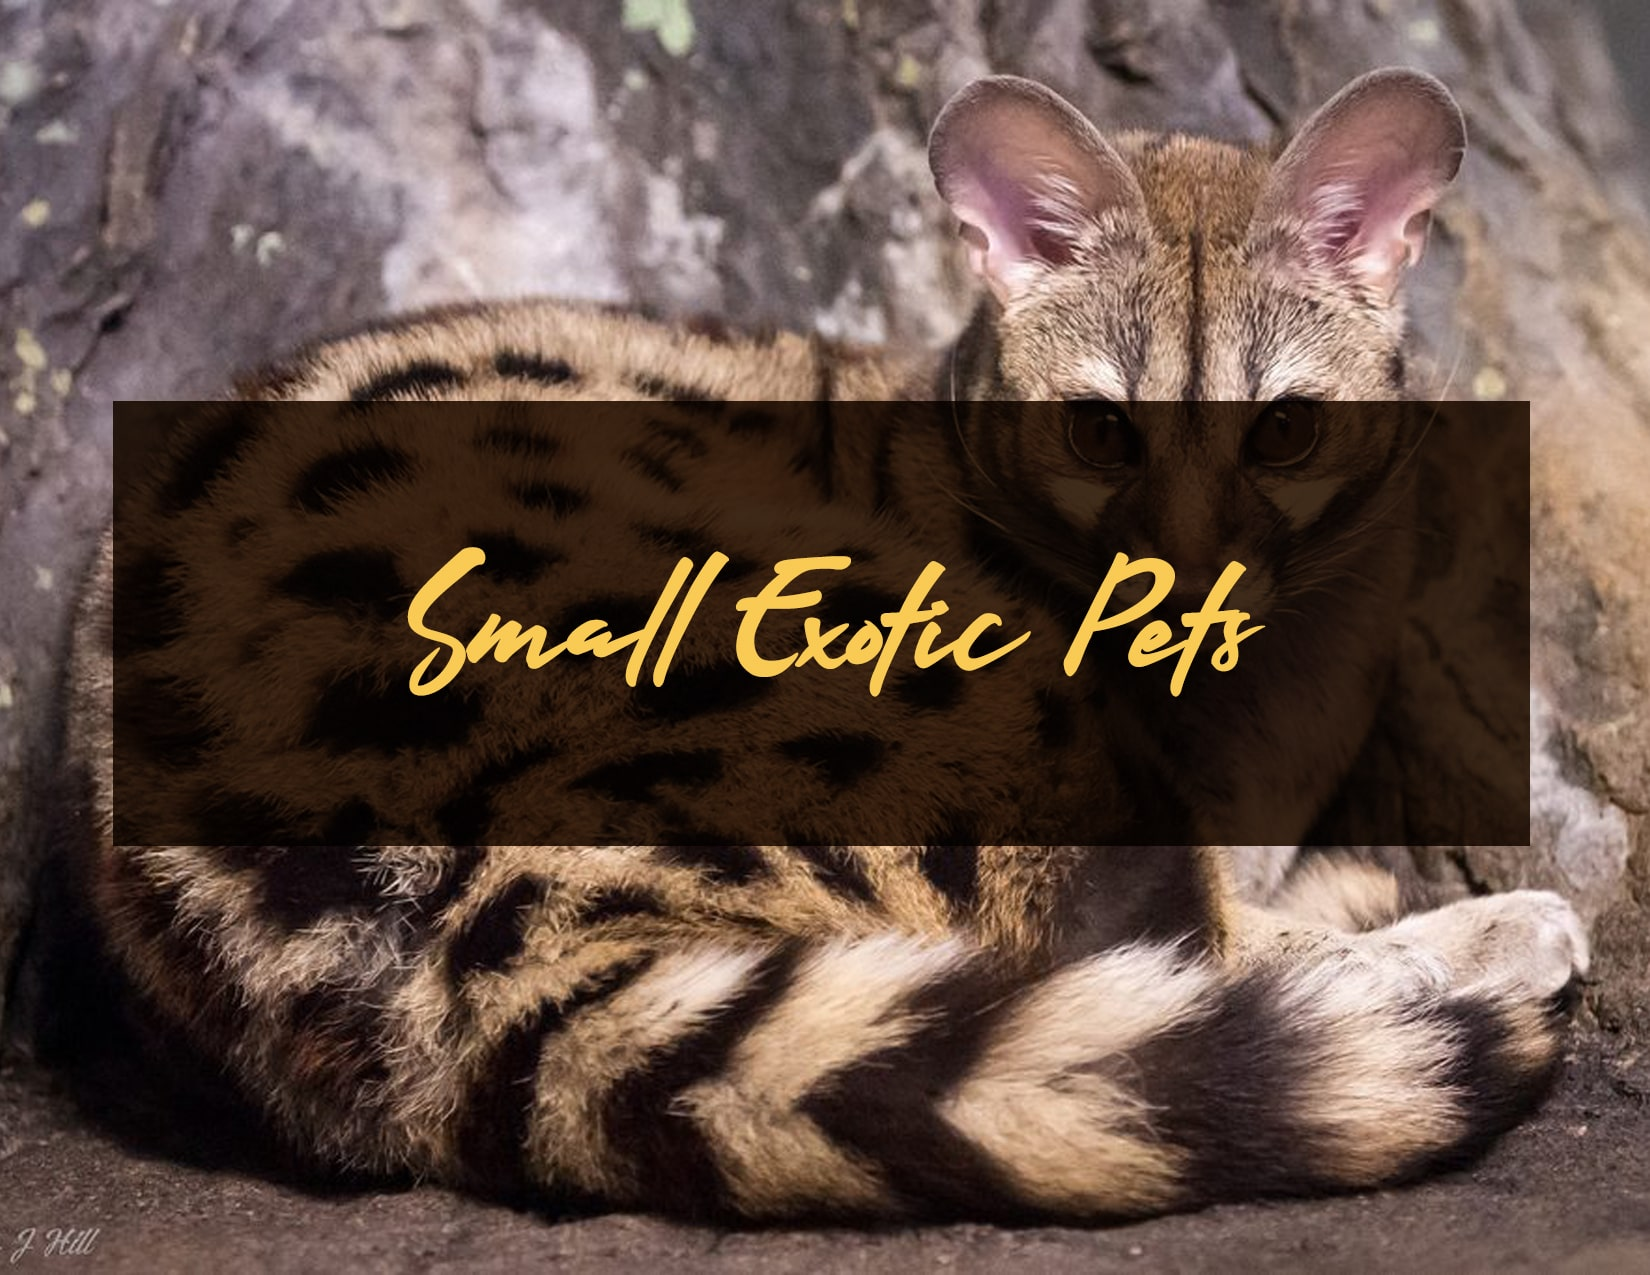 Small Exotic Pets